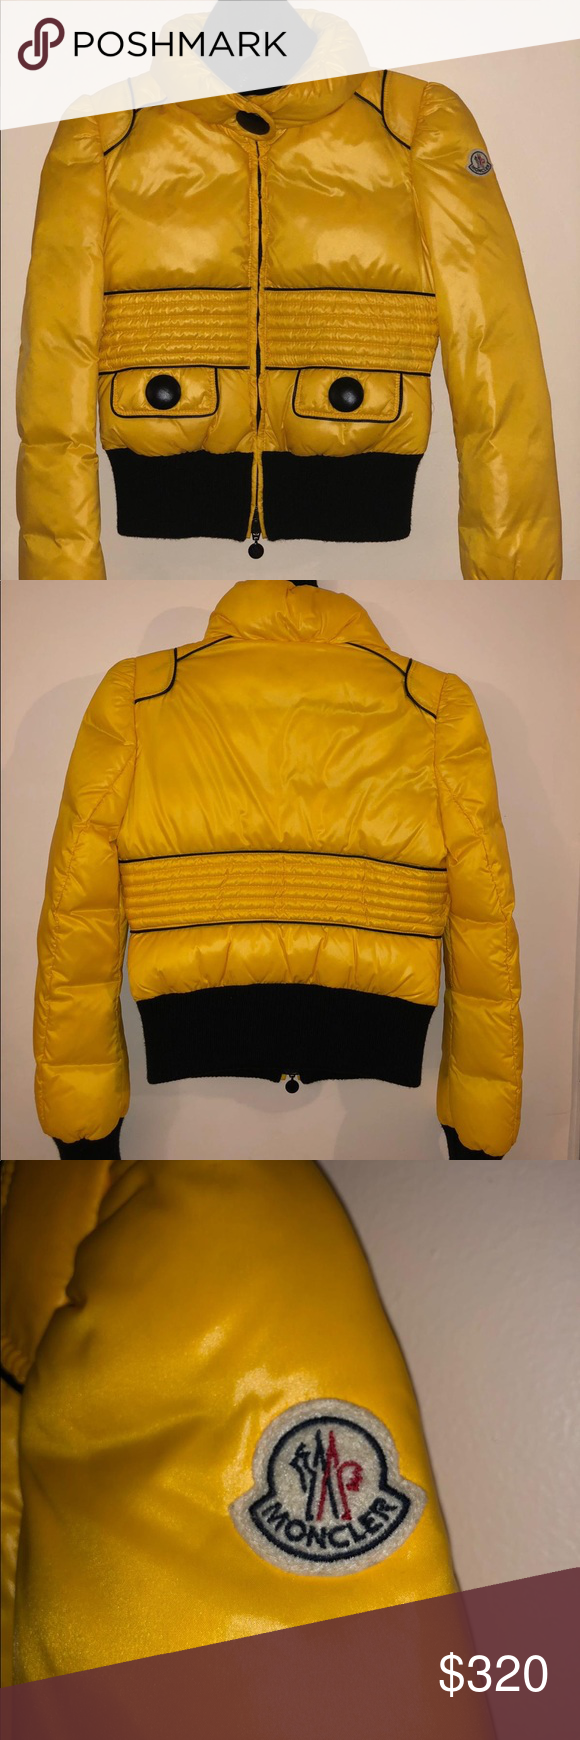 a304ef099ba9 Excellent Condition Women s Moncler Jacket This is a beautiful ...